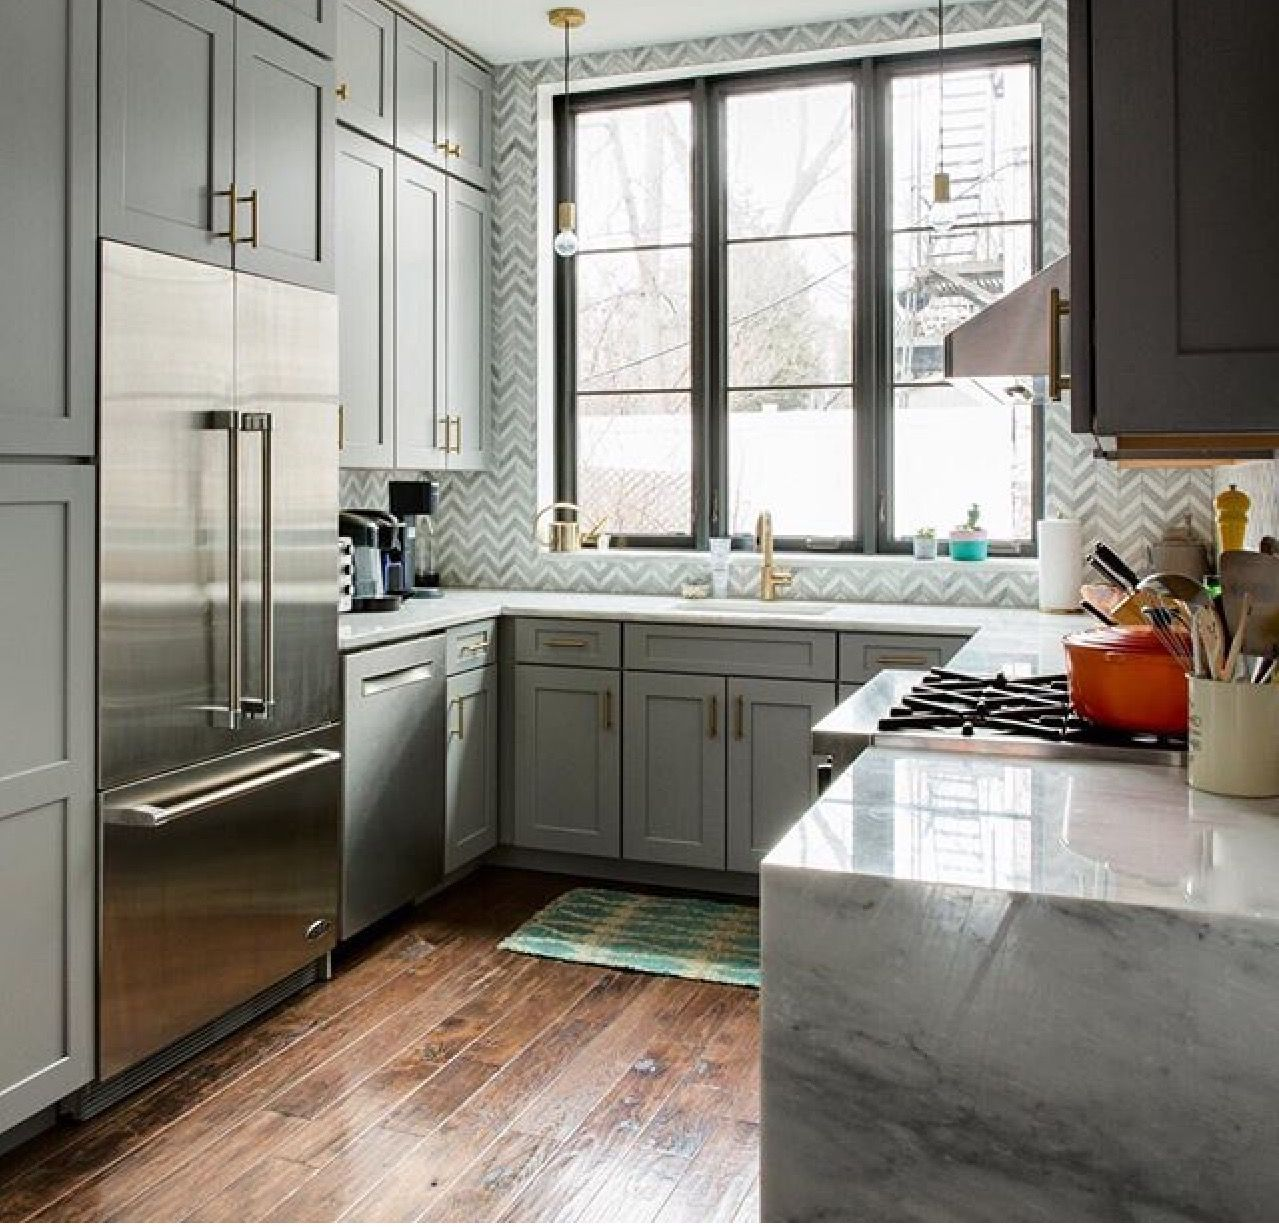 Backsplash and gold touches Kitchen trends, Cheap